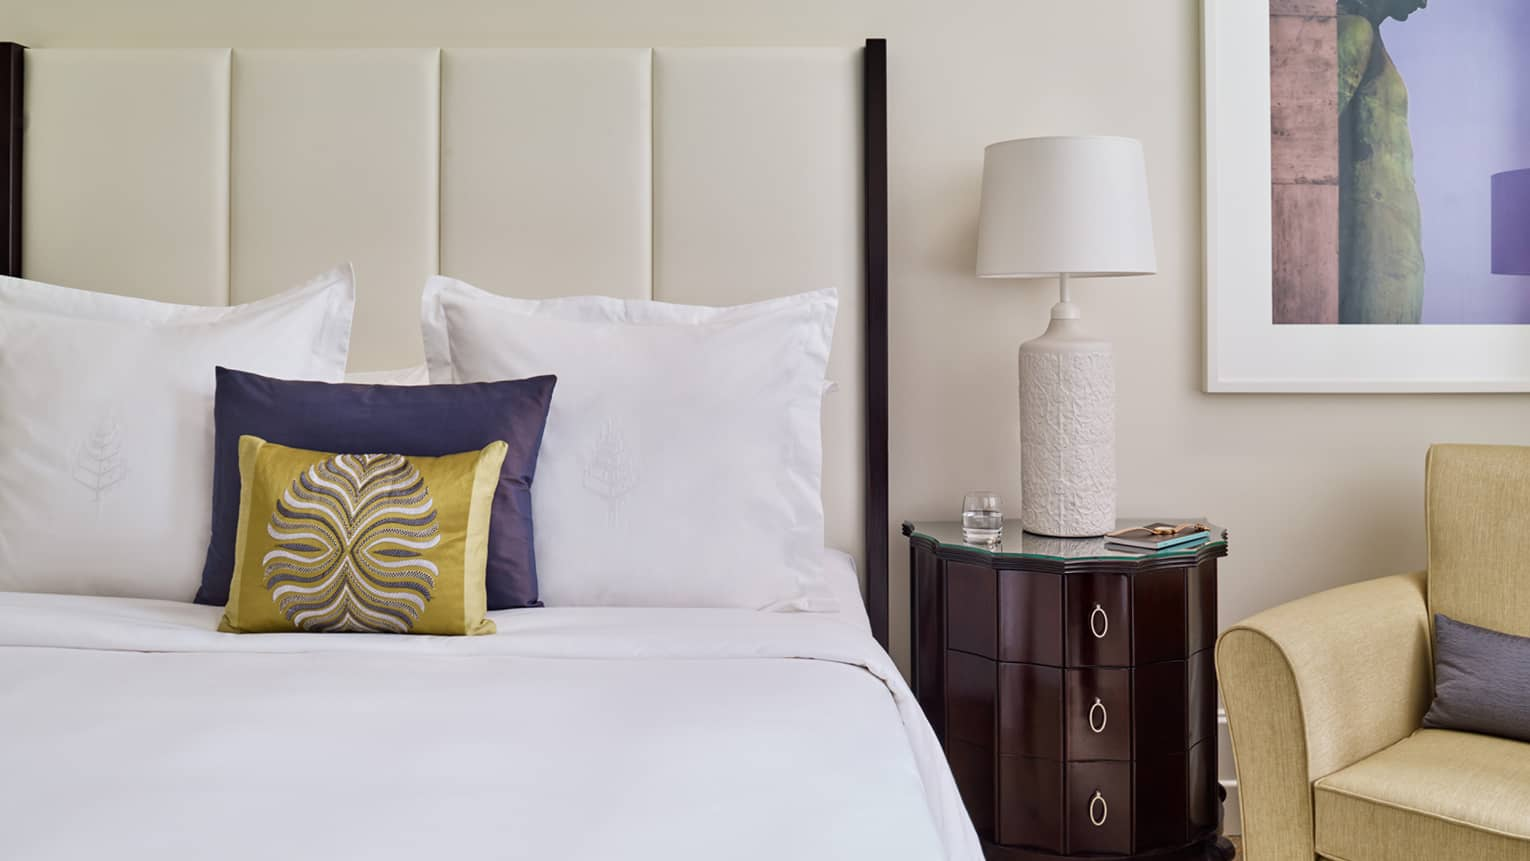 Close-up of Superior Room bed with white padded headboard, blue and gold accent pillows, lamp